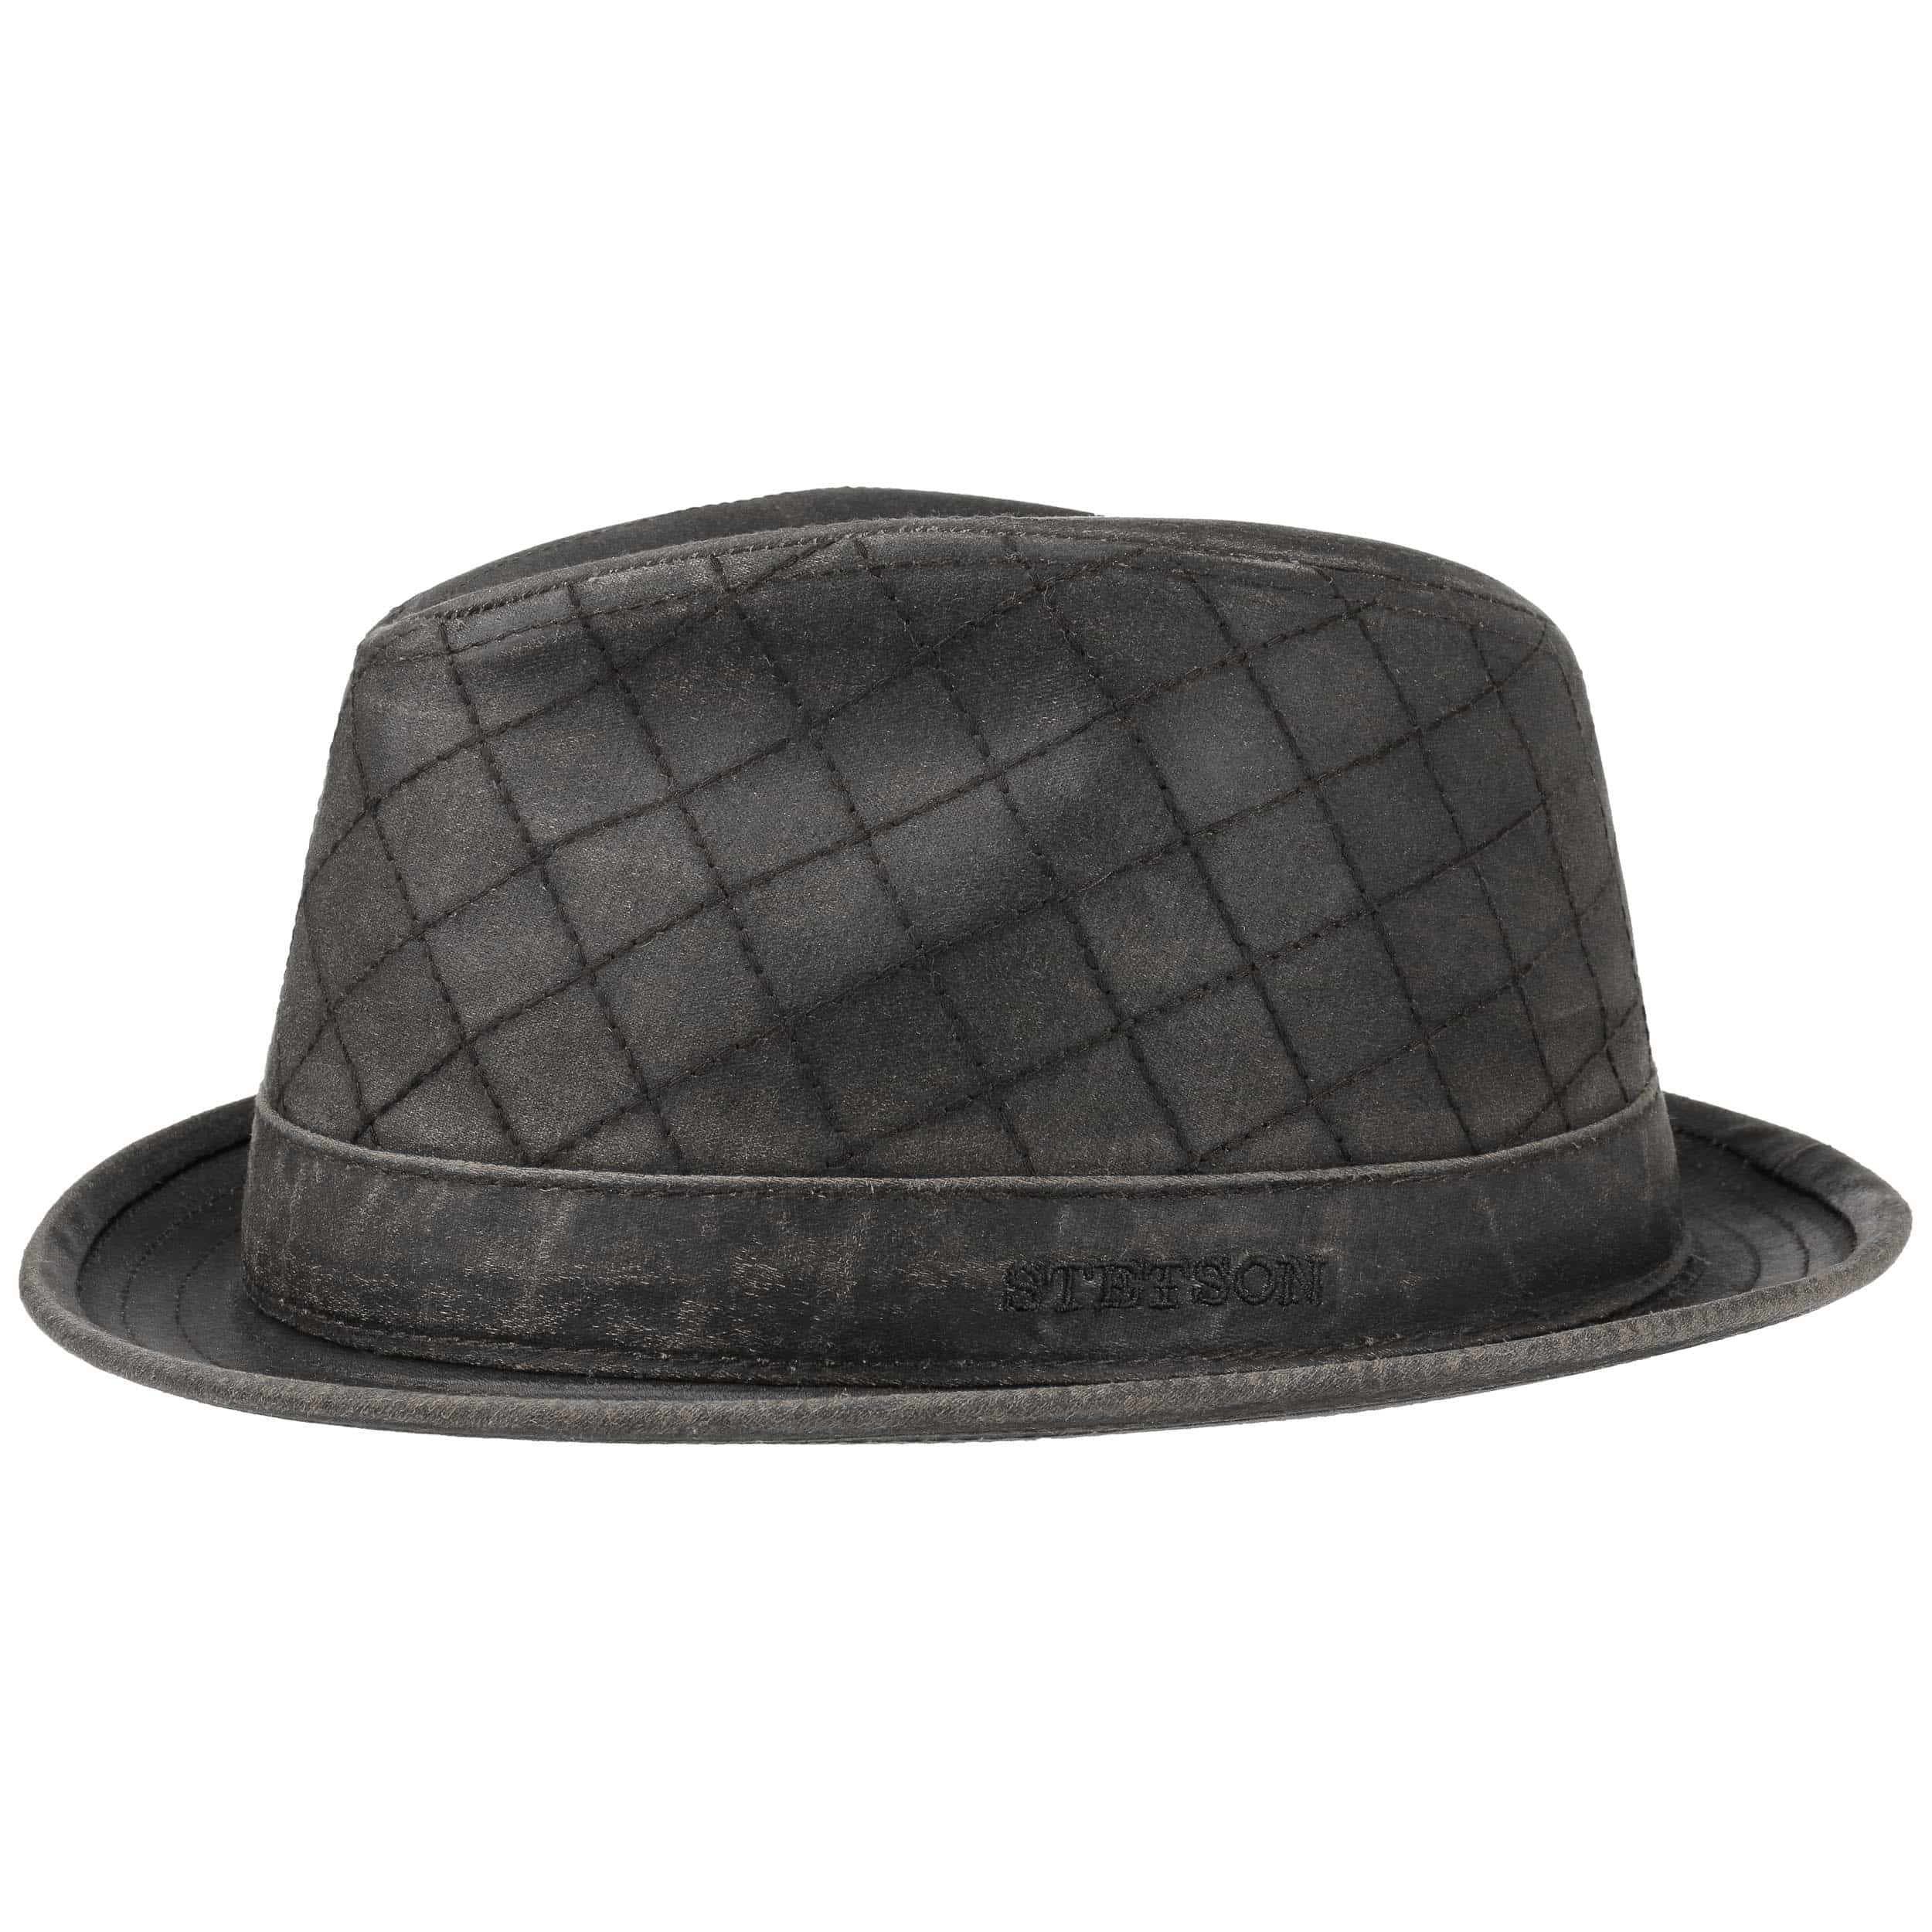 a06ad6aef26 Stitches Old Cotton Player Hat. by Stetson